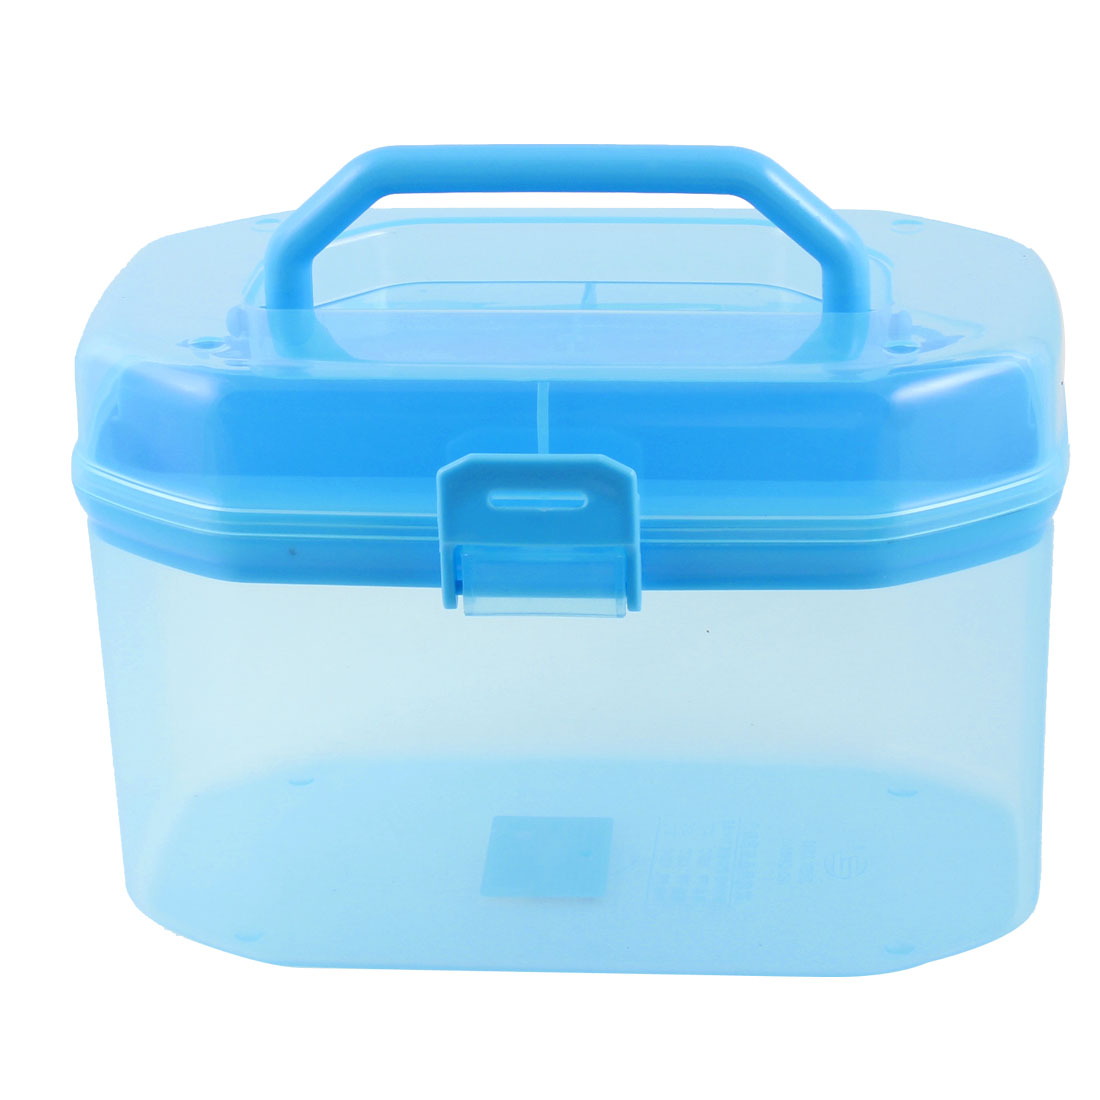 Clear Blue Multi Purpose Case Component Stationery Cosmetic Storage Box Holder